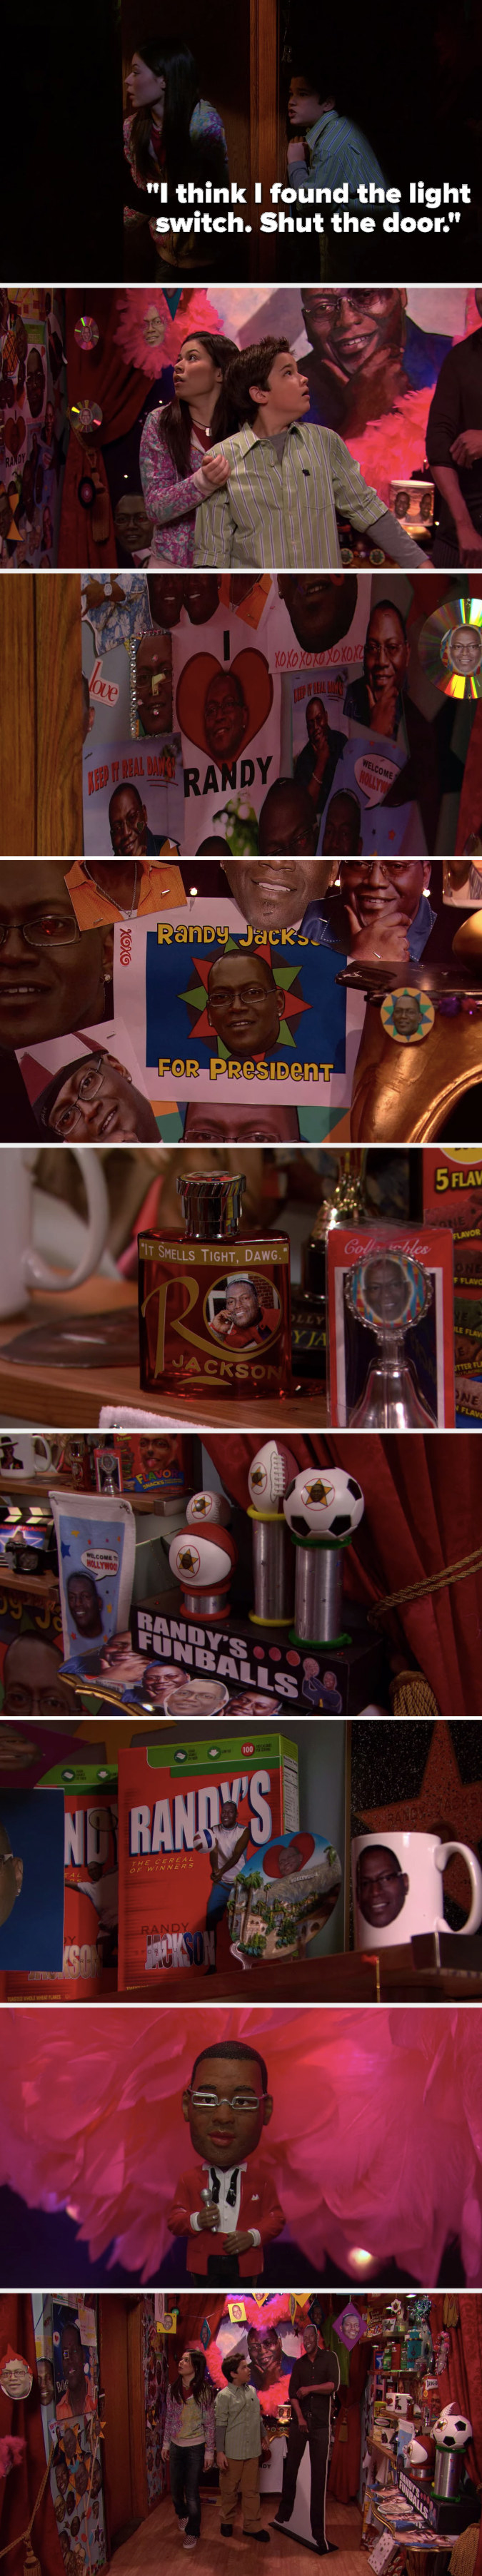 """Freddie says, """"I think I found the light switch. Shut the door,"""" and he and Carly realize they're in a closet full of pictures of Randy Jackson and Randy Jackson paraphernalia"""